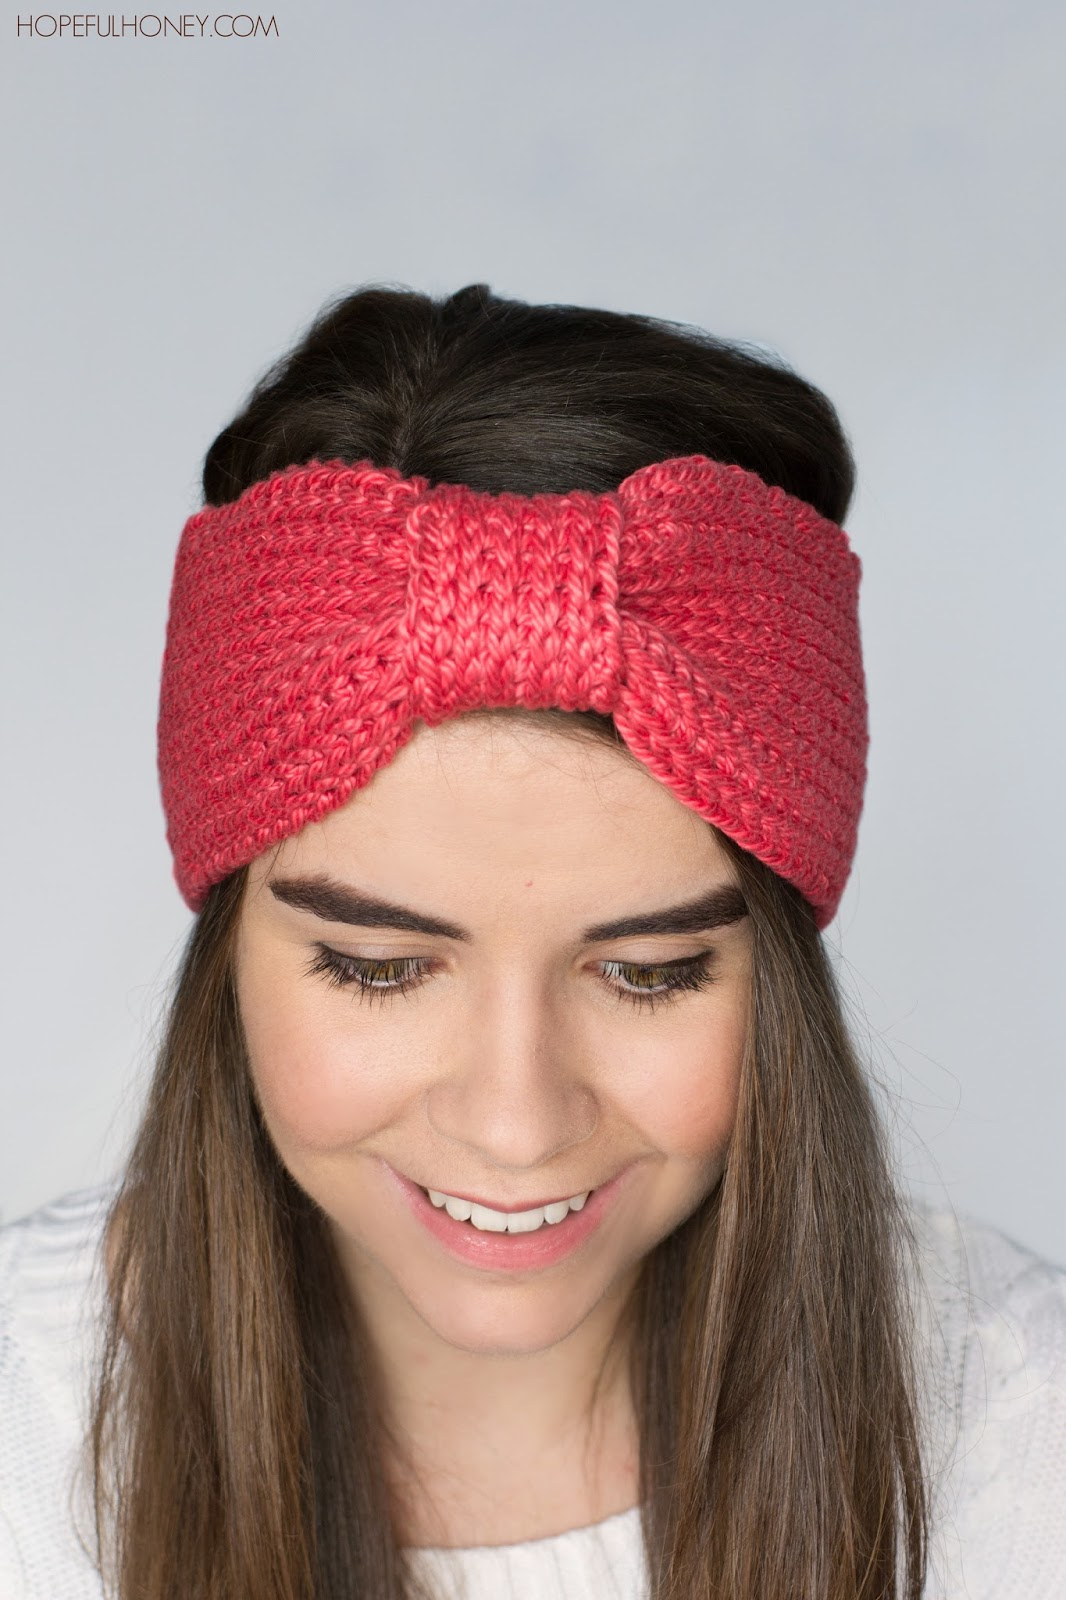 Free Adjustable Crochet Headband Pattern : Hopeful Honey Craft, Crochet, Create: Coral Candy ...